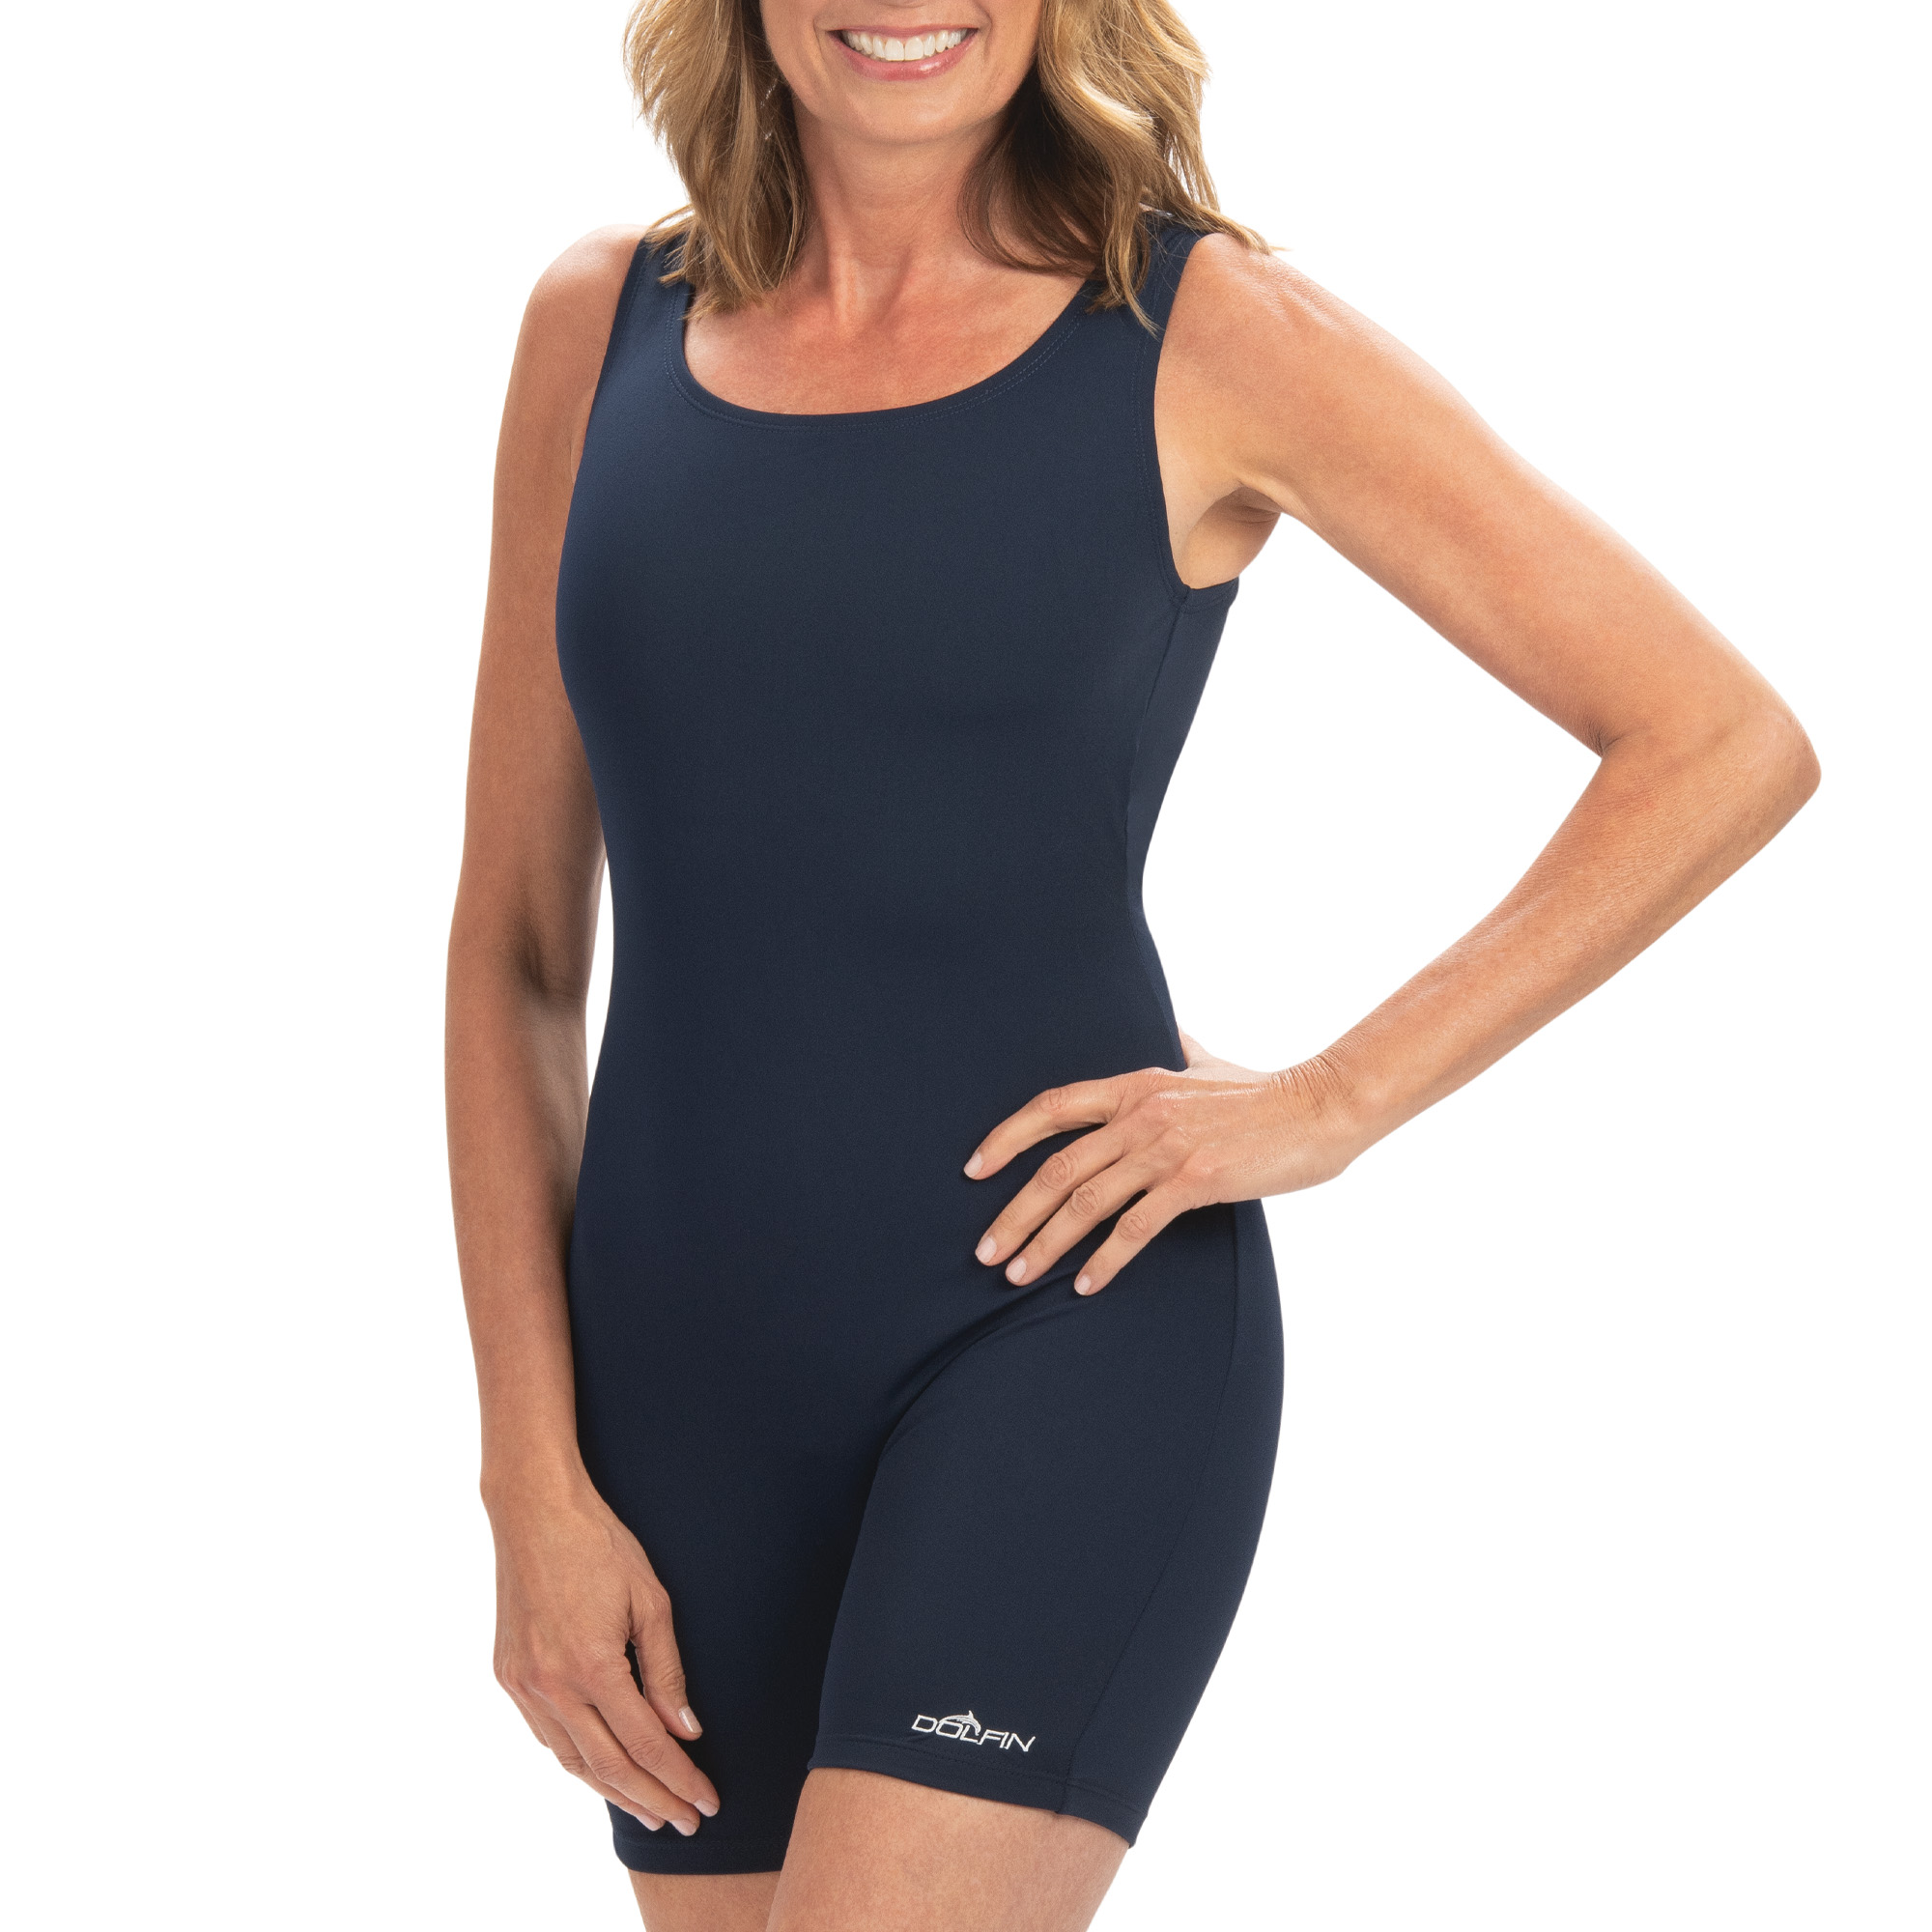 Aquashape Solid Aquatard Swimsuit in Navy